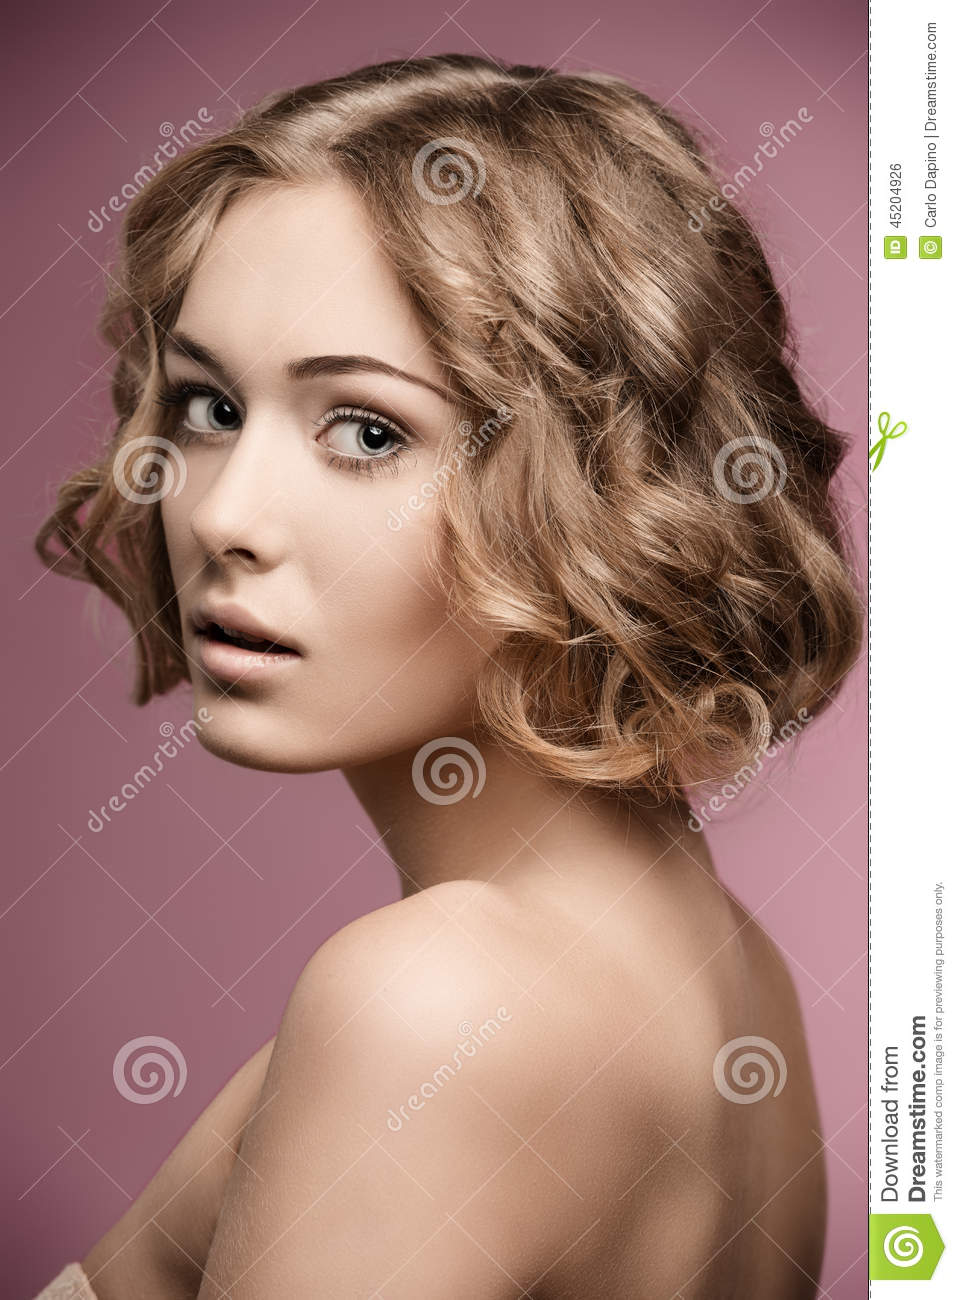 Girl With Blonde Curly Hair Cut Stock Photo Image 45204926